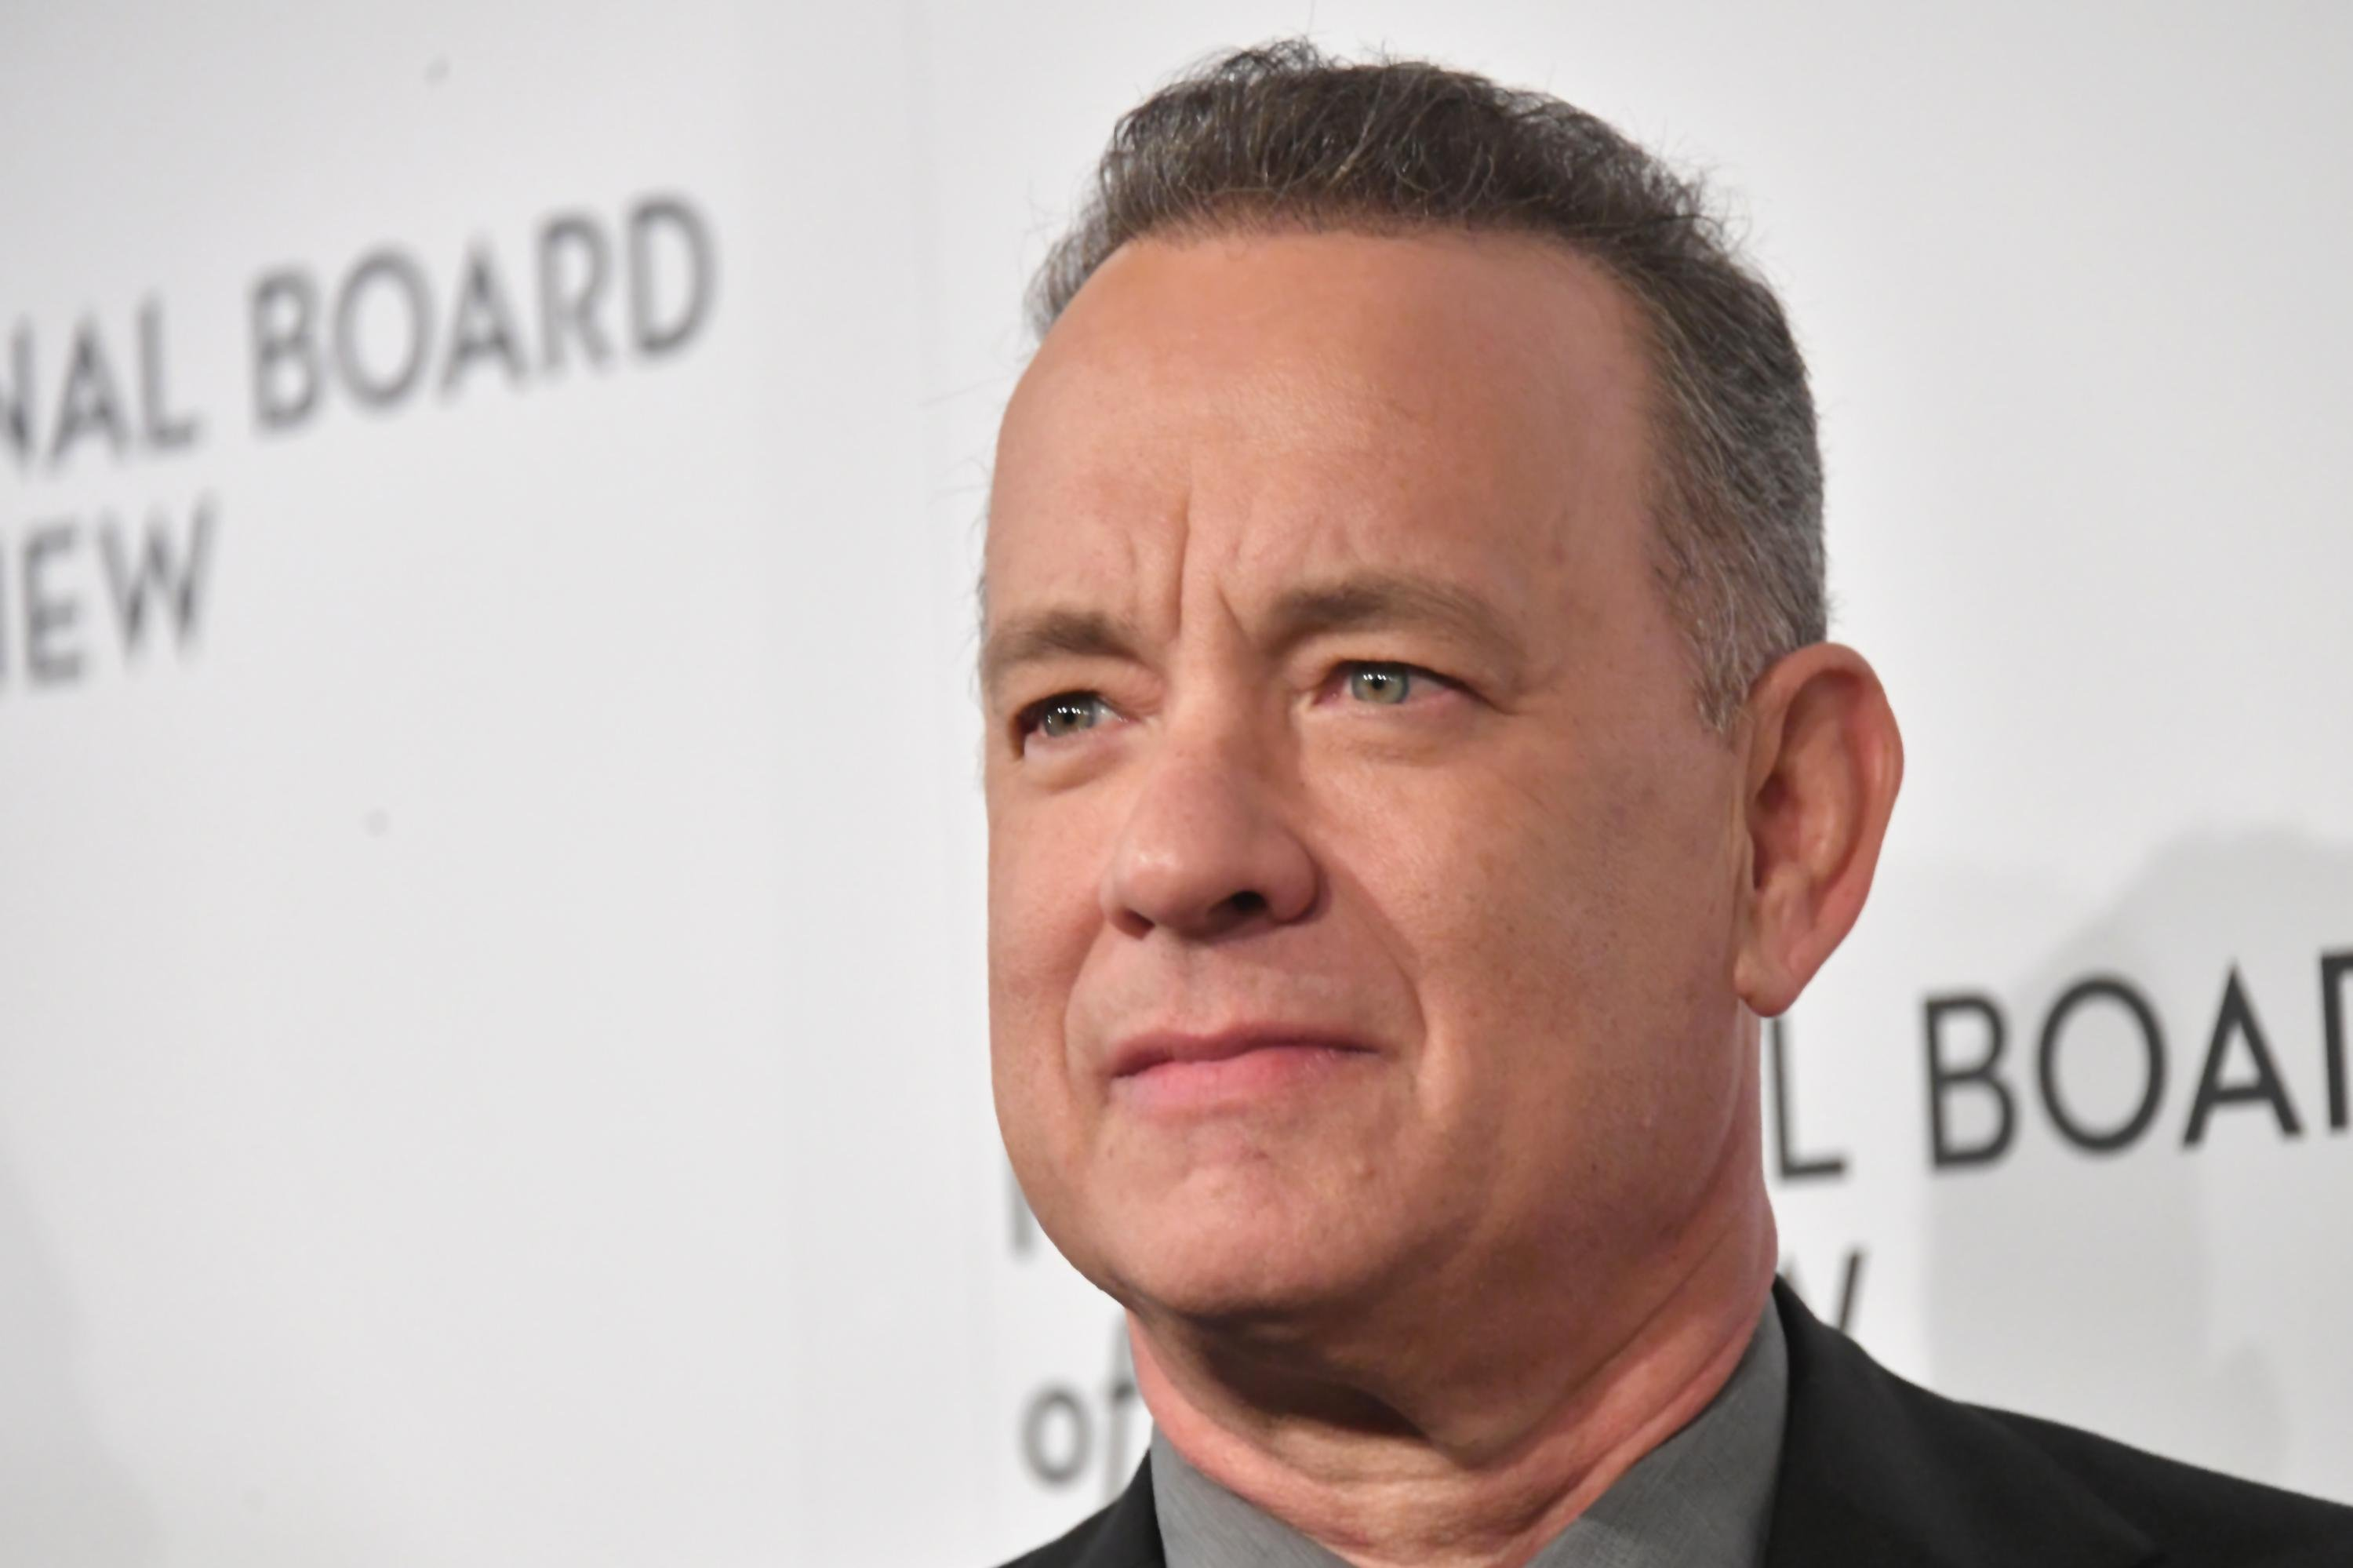 The Real Reason Why Tom Hanks Divorced His First Wife